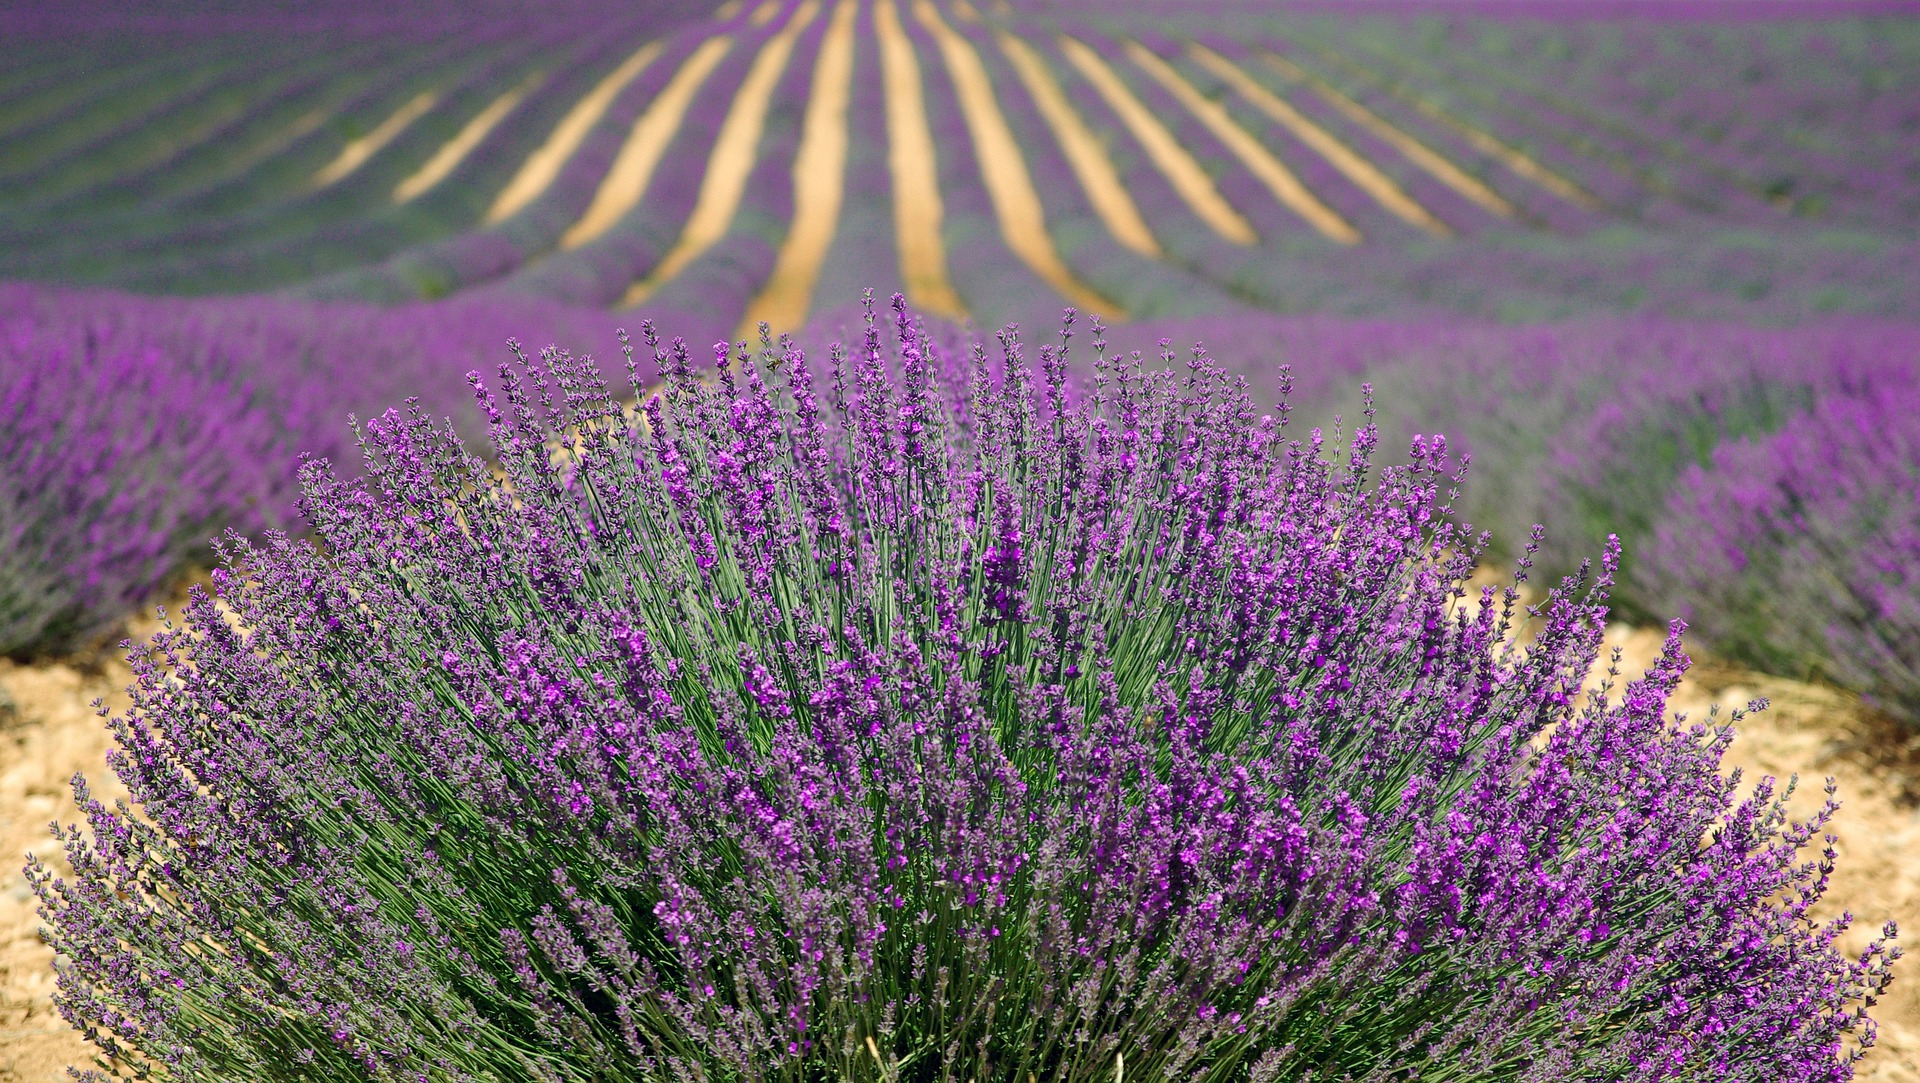 We literally have miles and miles of lavender fields here in the UK, open to the public for basically getting intoxicated on the stuff. See the link for places to go, you can pick your own and take gorgeous photos too.